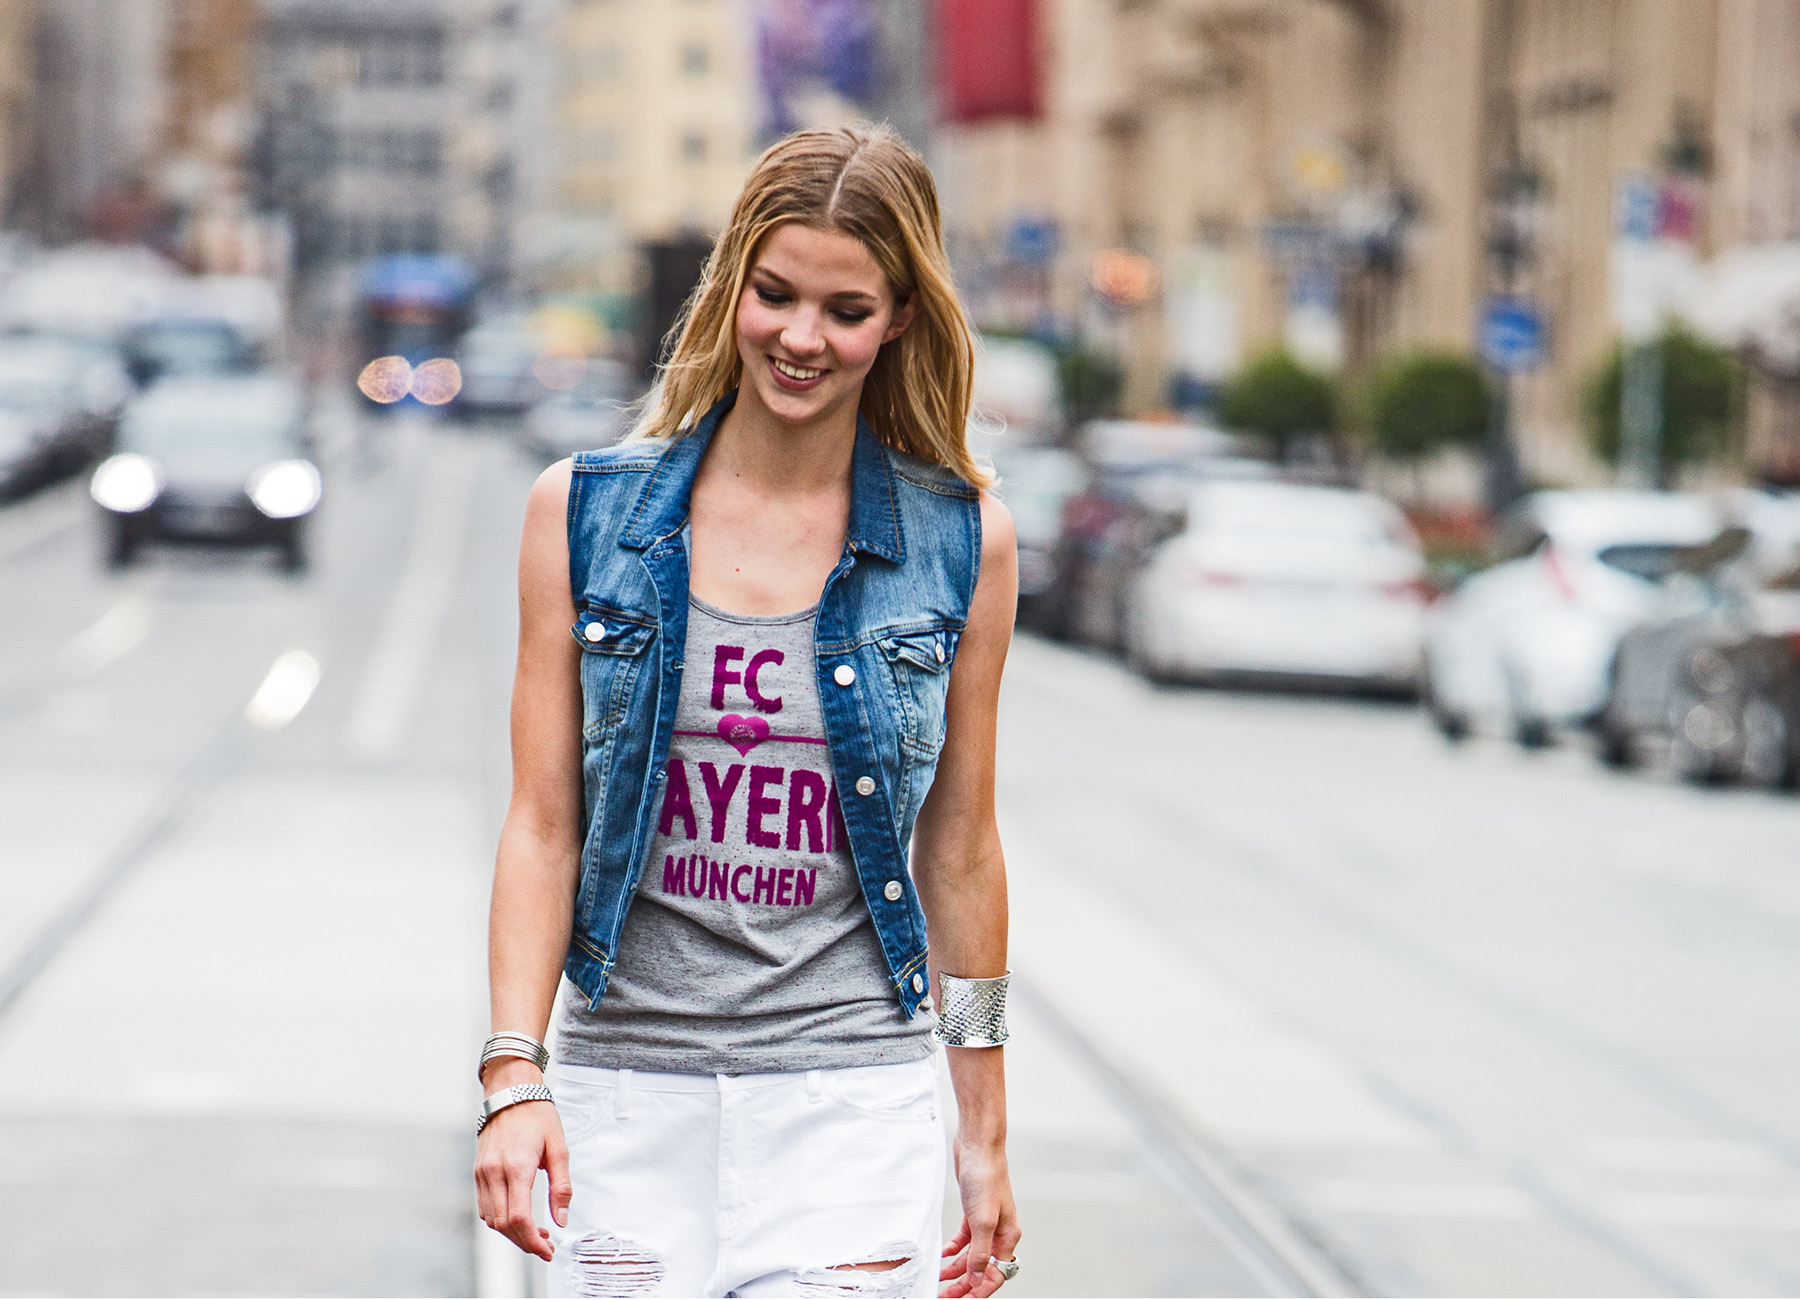 Ladycollection_FC Bayern, Maximilianstrasse, Shooting, Christoph Gramann_3